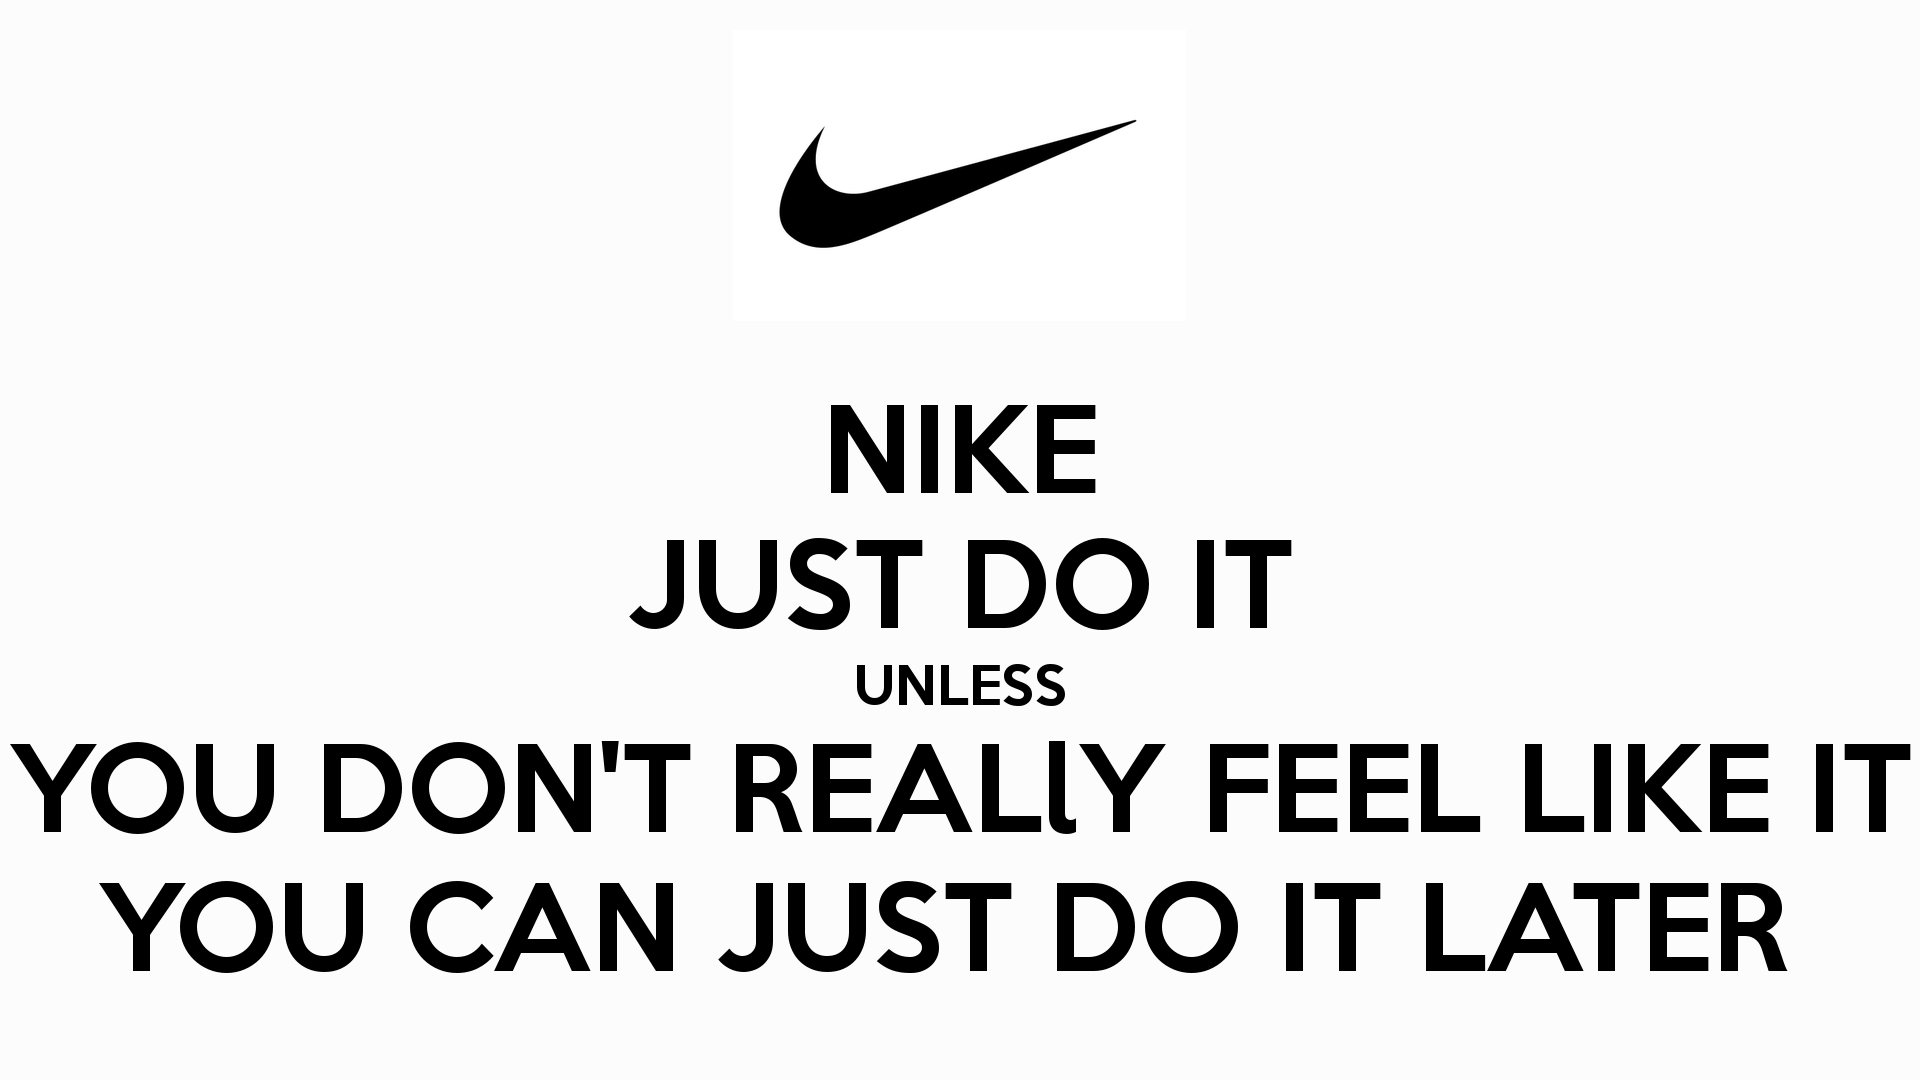 Just Do It Later Wallpapers - Top Free ...